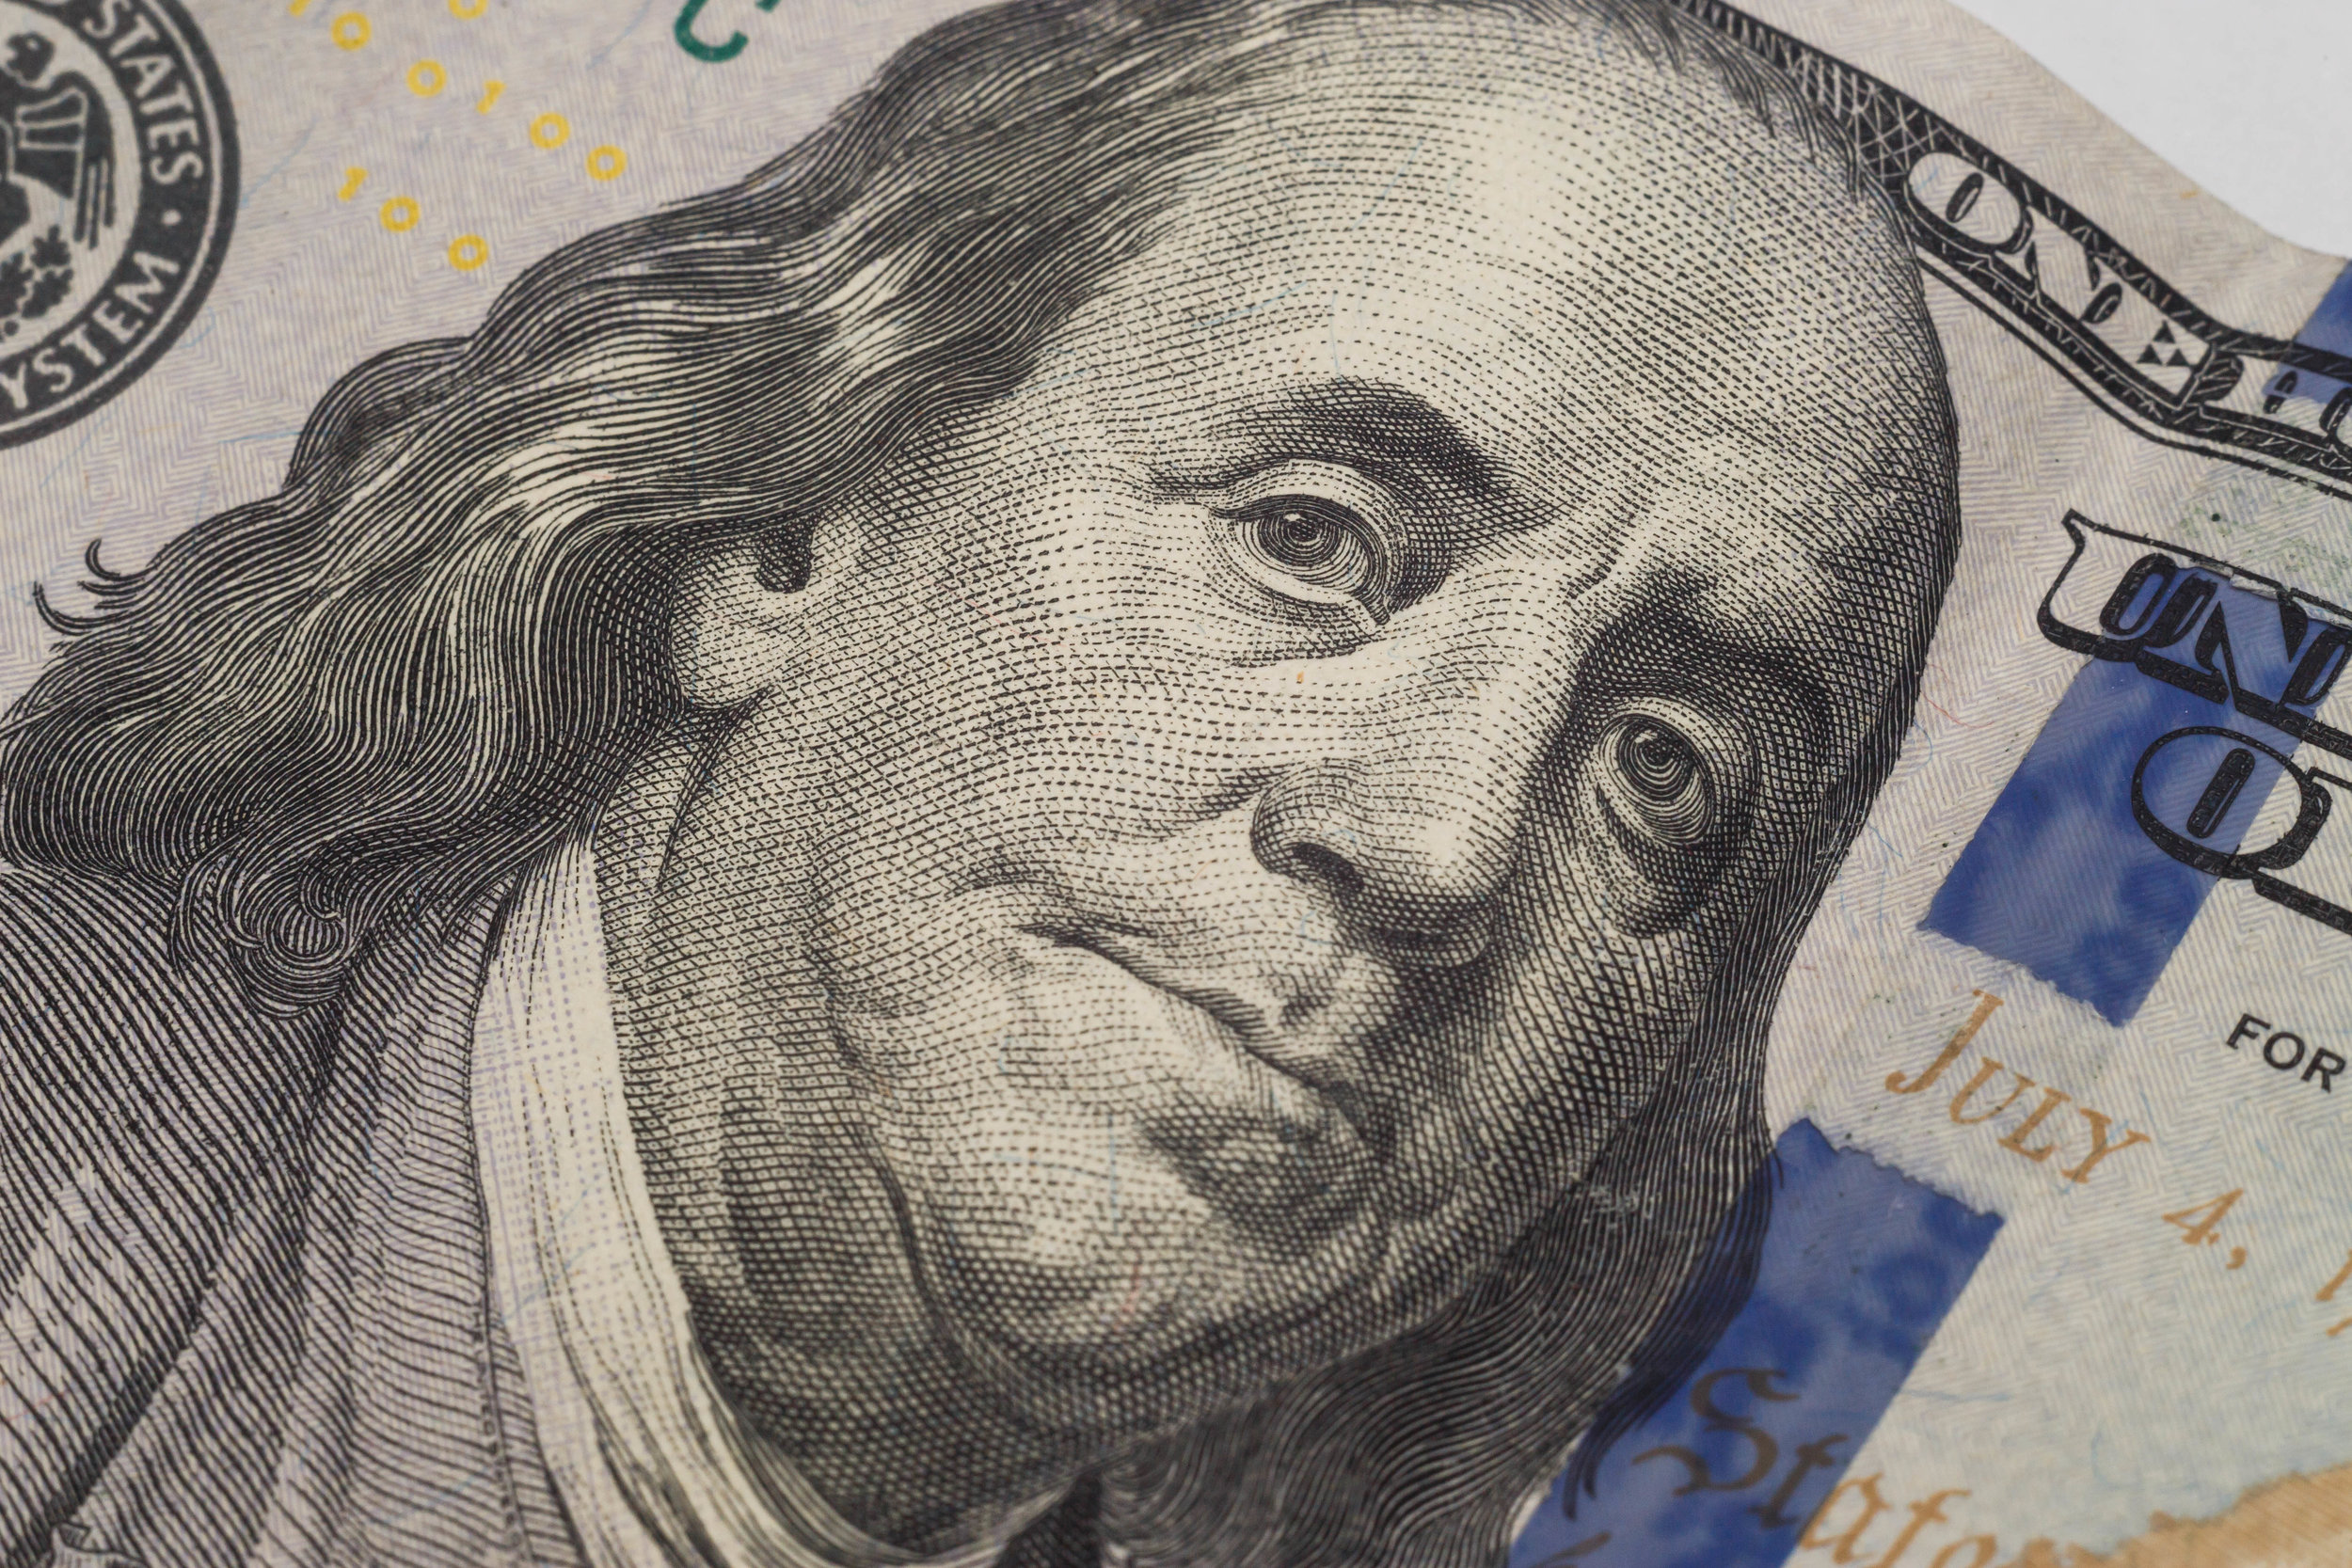 dollars-closeup-benjamin-franklins-portrait-on-P8RJV5K.jpg